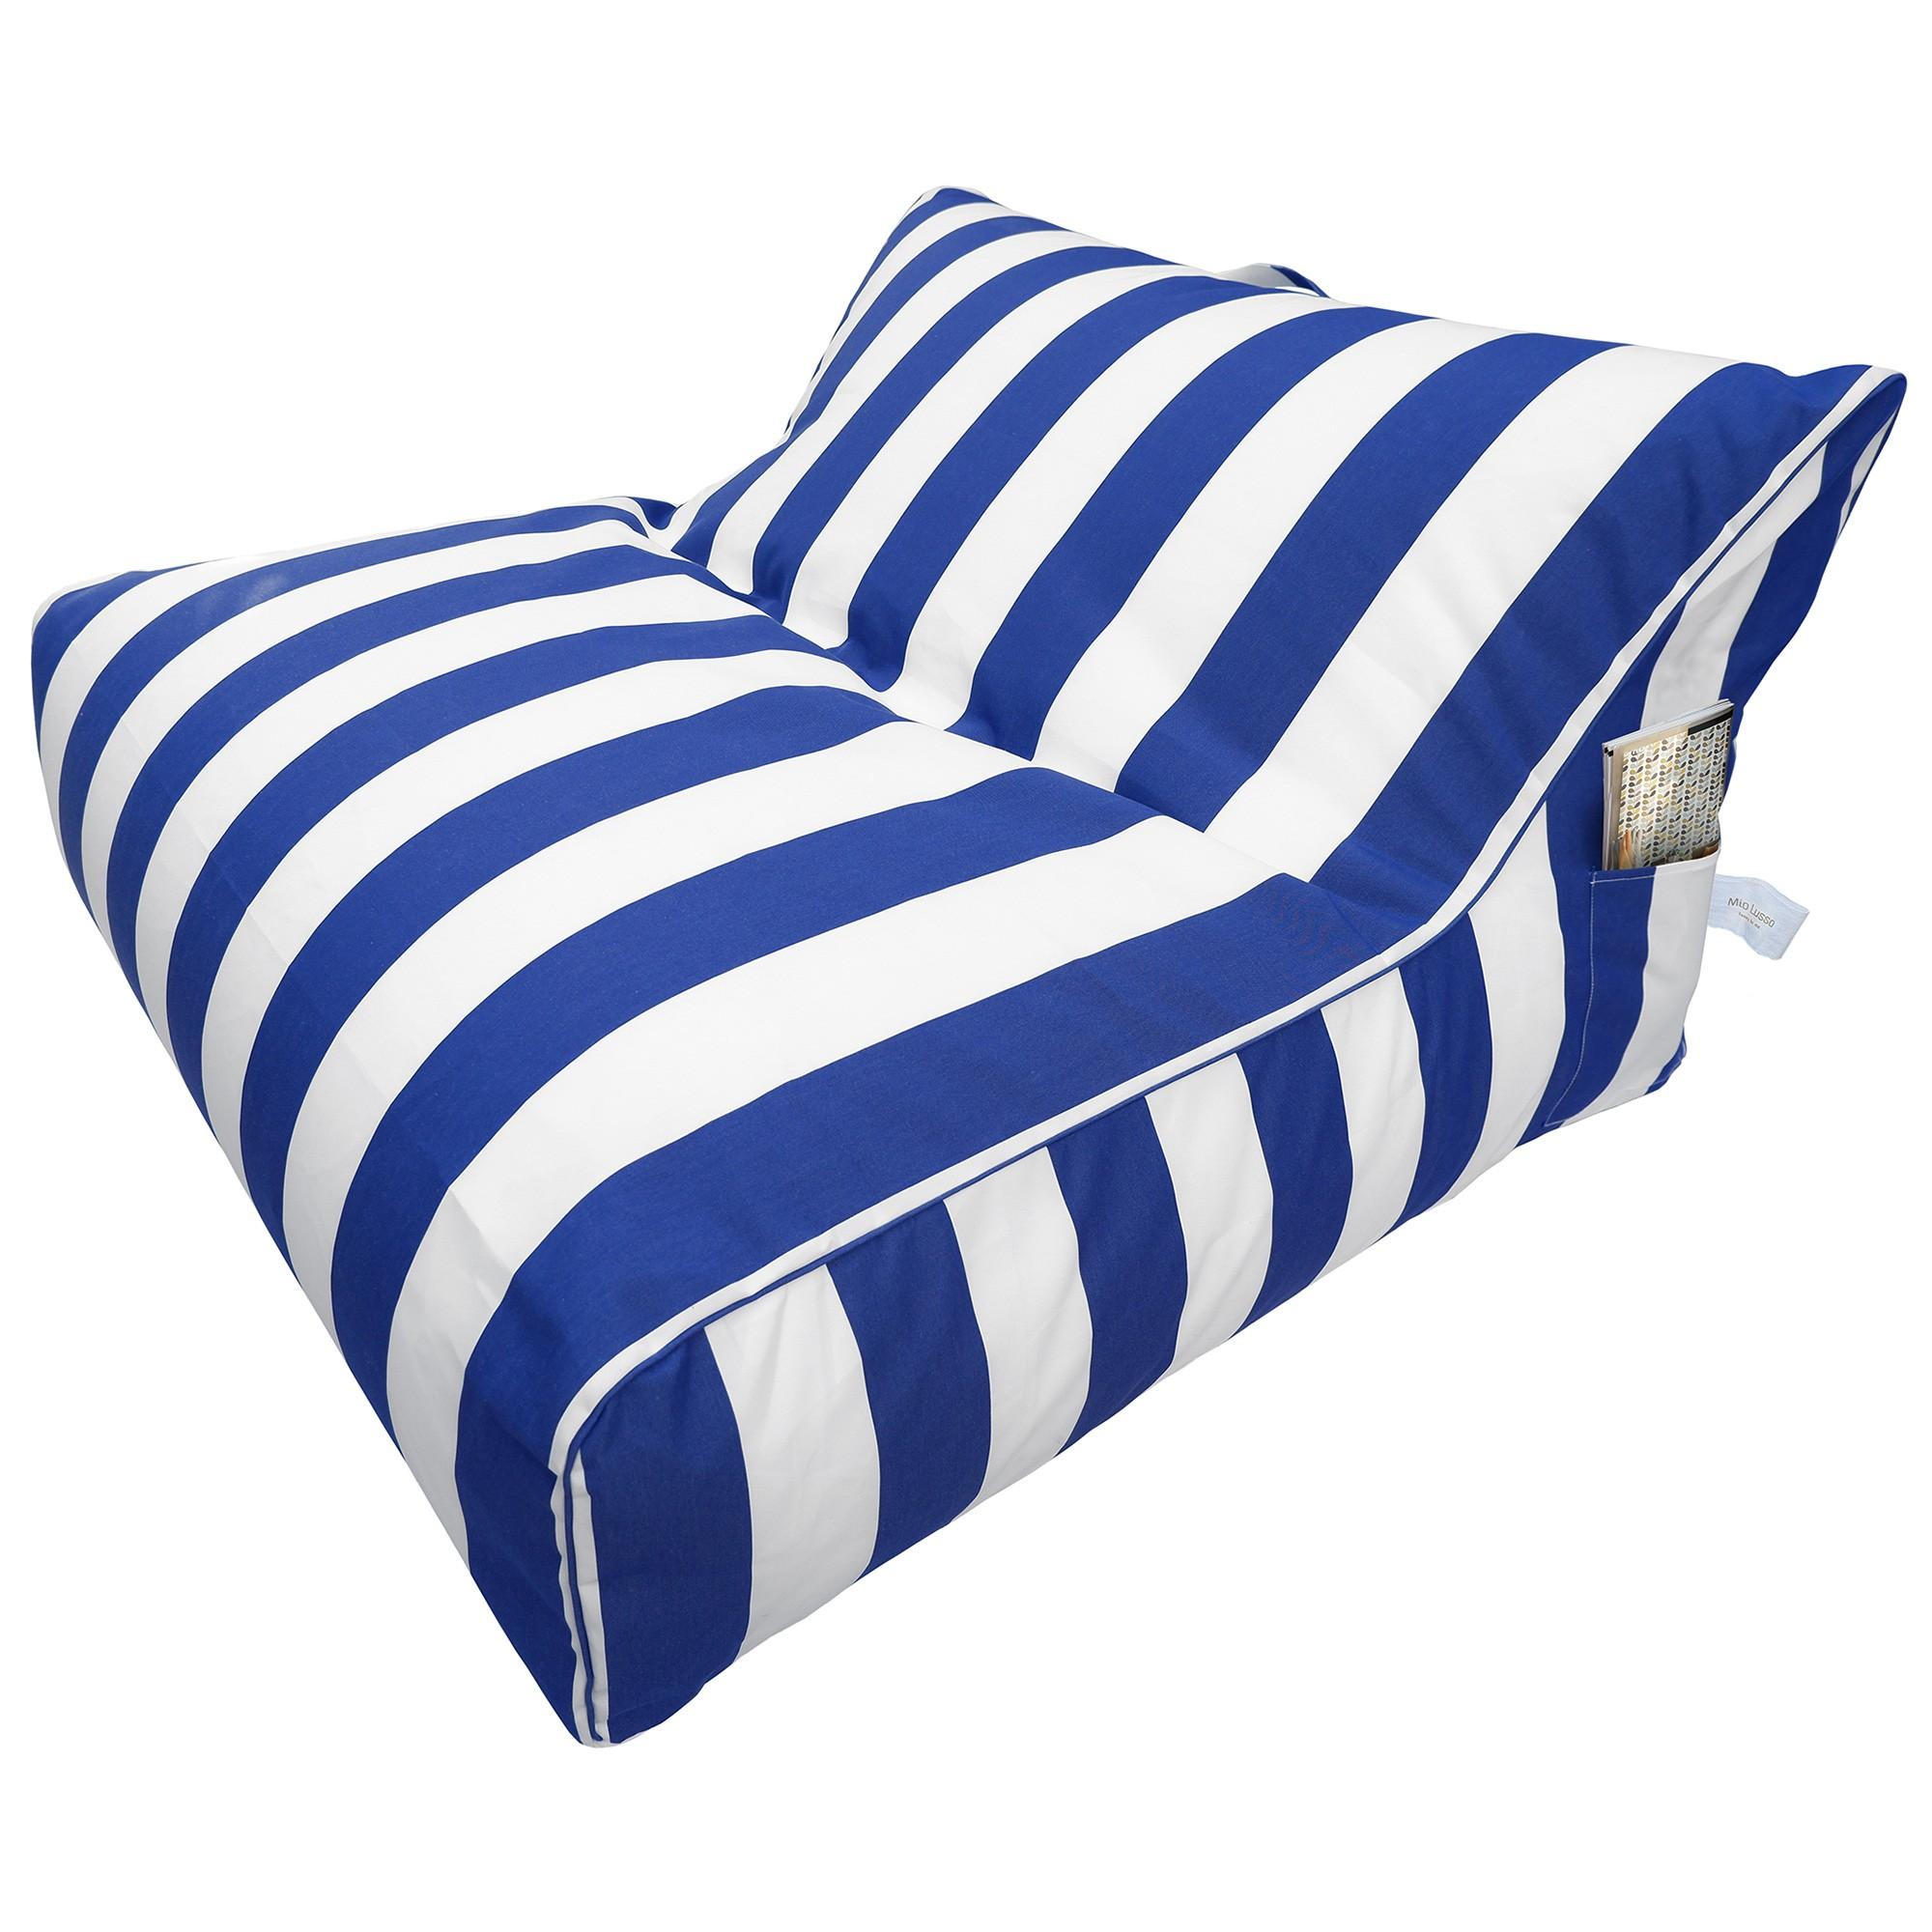 Maldives Fabric Indoor / Outdoor Bean Bag Cover, Blue Stripe